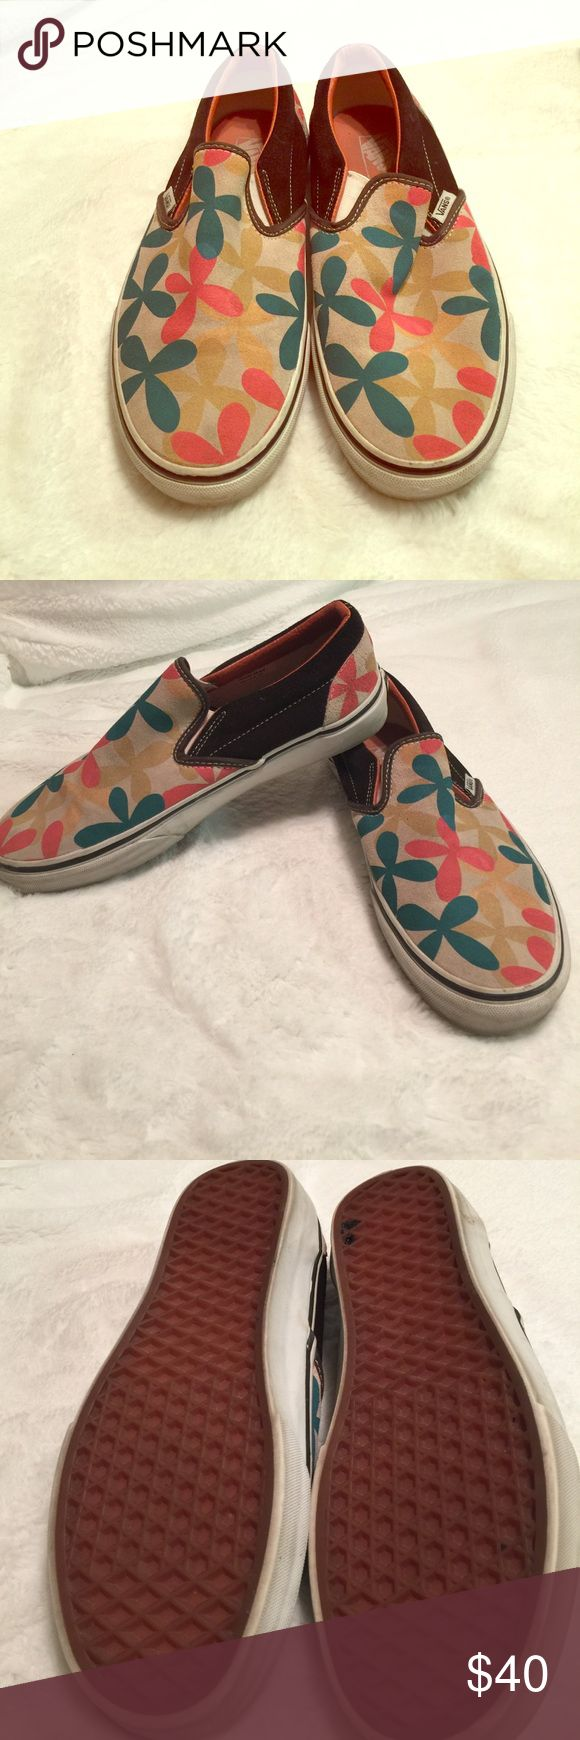 Vans slip on shoe Vans slip on shoe in size 8.5 women's floral print tops brown sides. Used. Still in great condition. Vans Shoes Sneakers